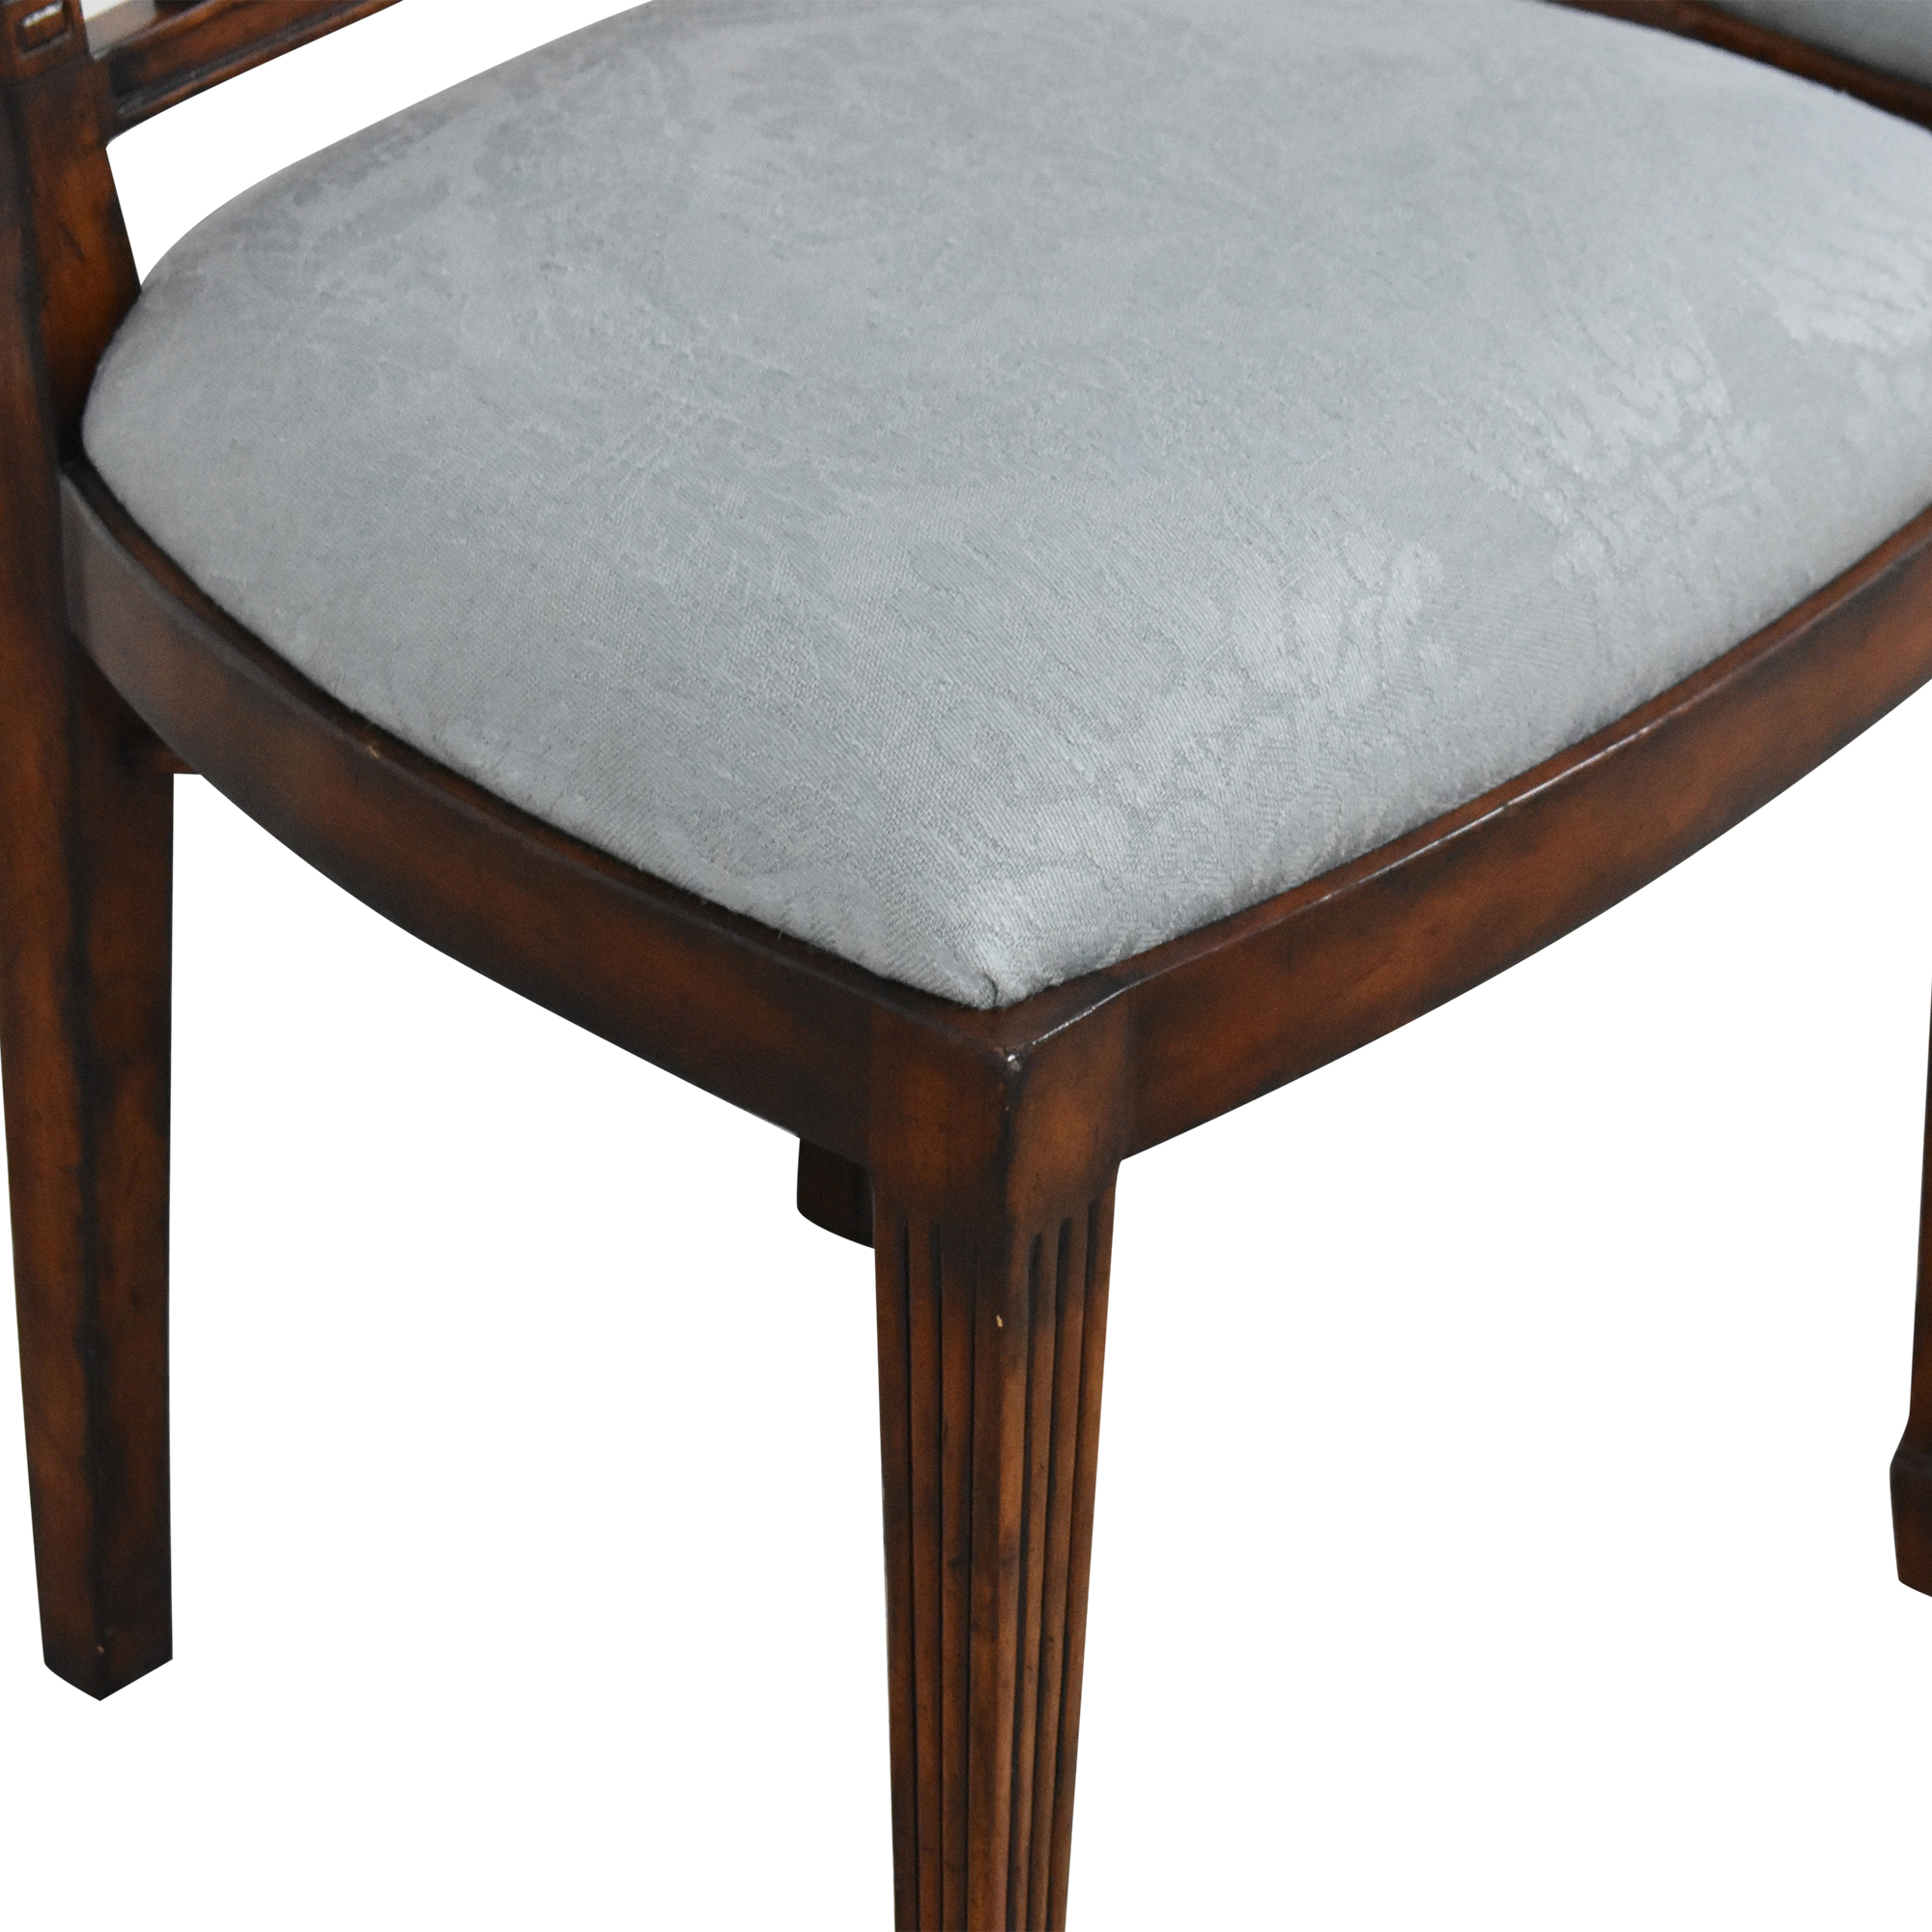 English Country Home Upholstered Dining Chairs / Chairs